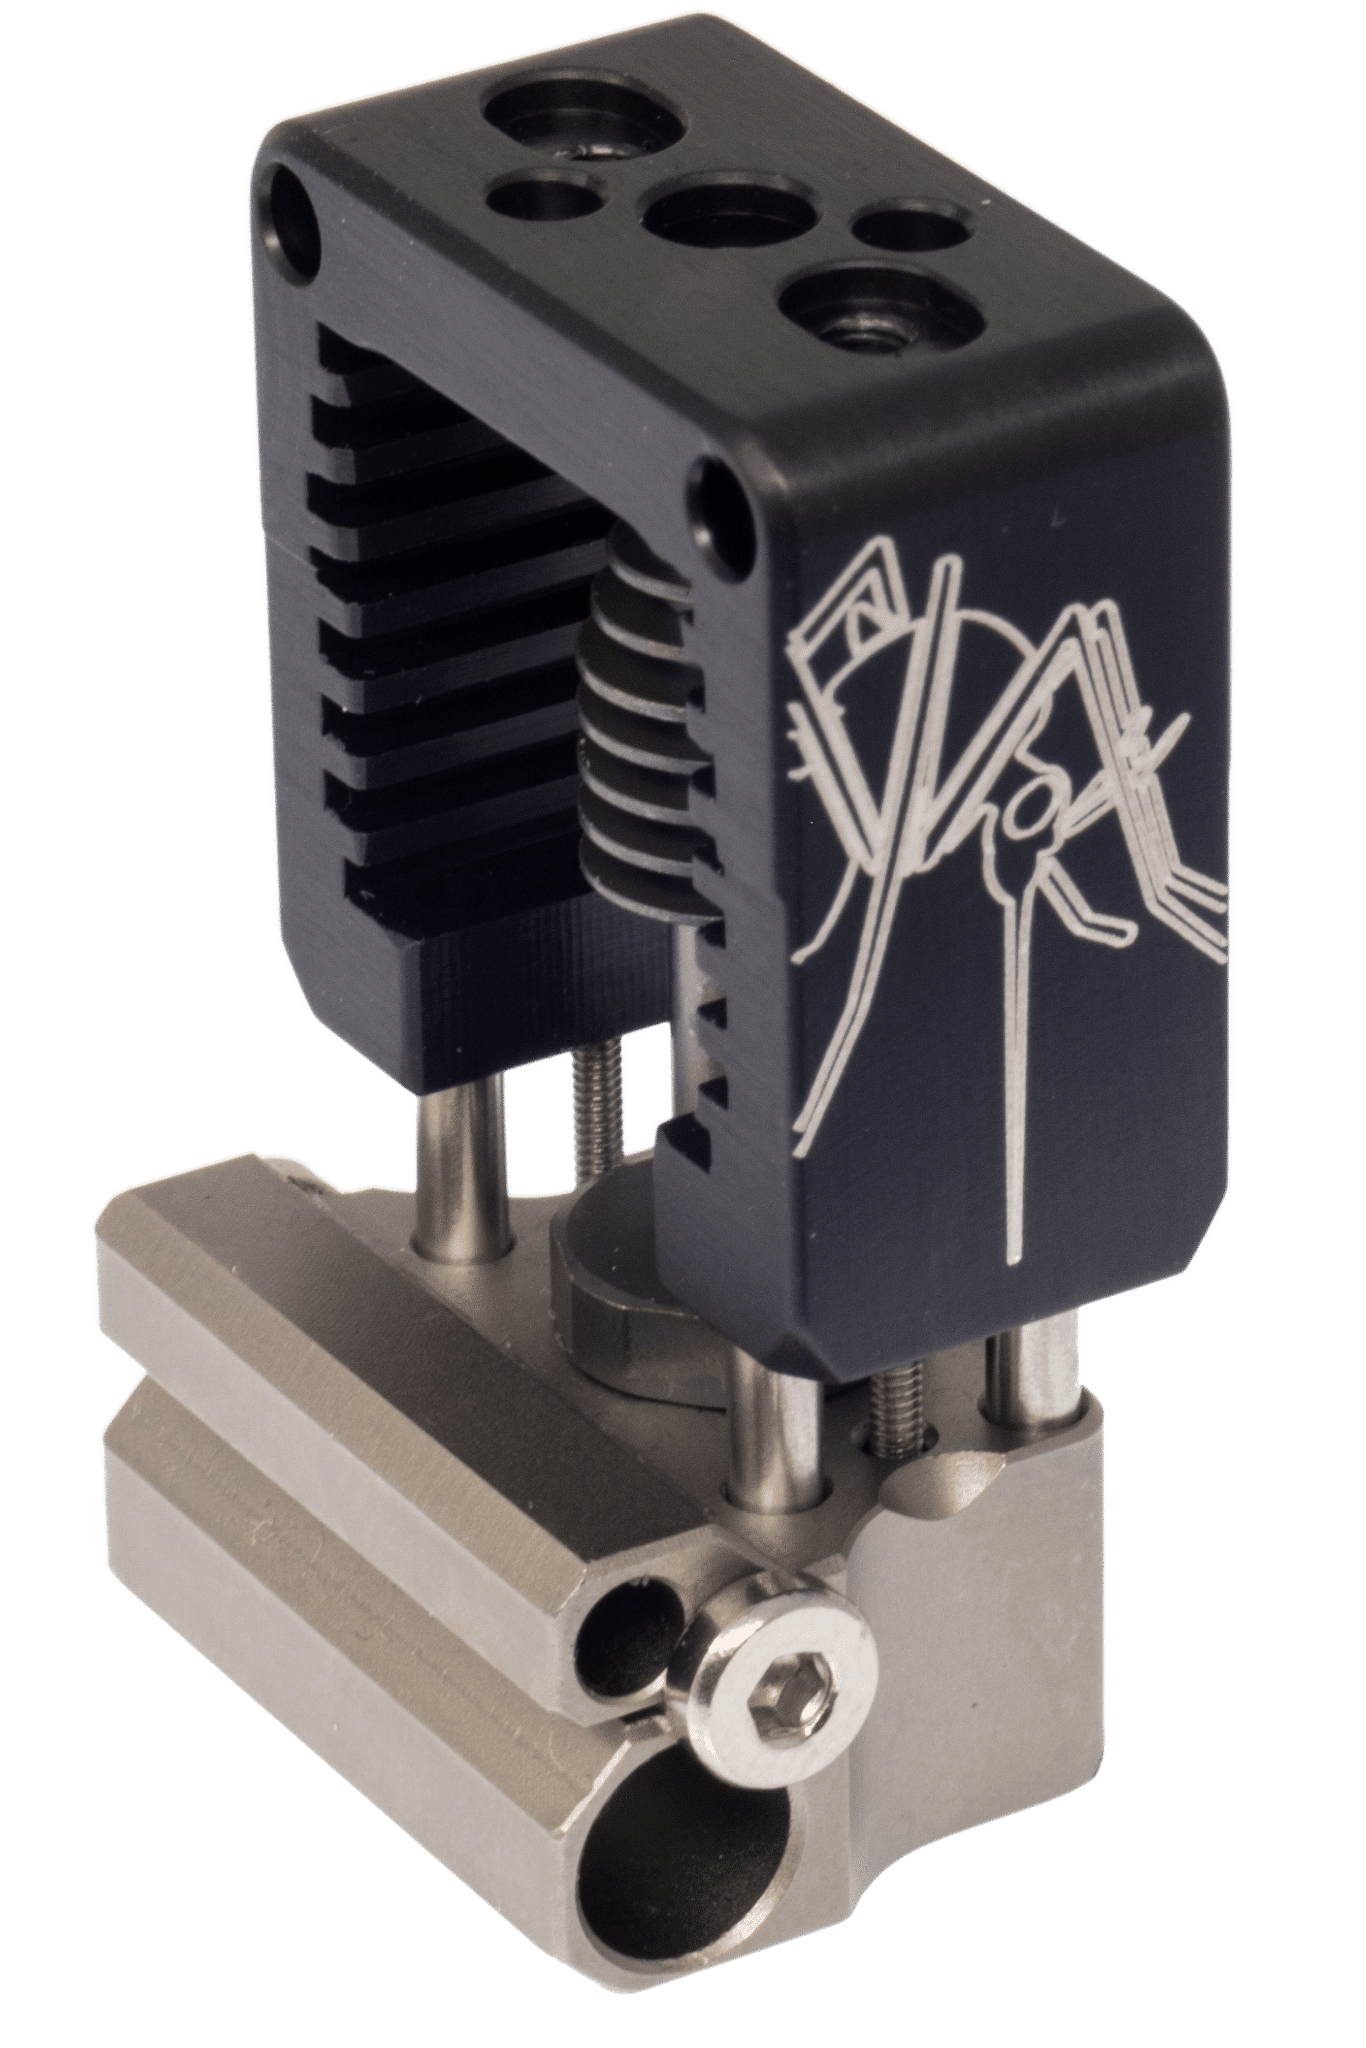 Slice Engineering Mosquito Hot End